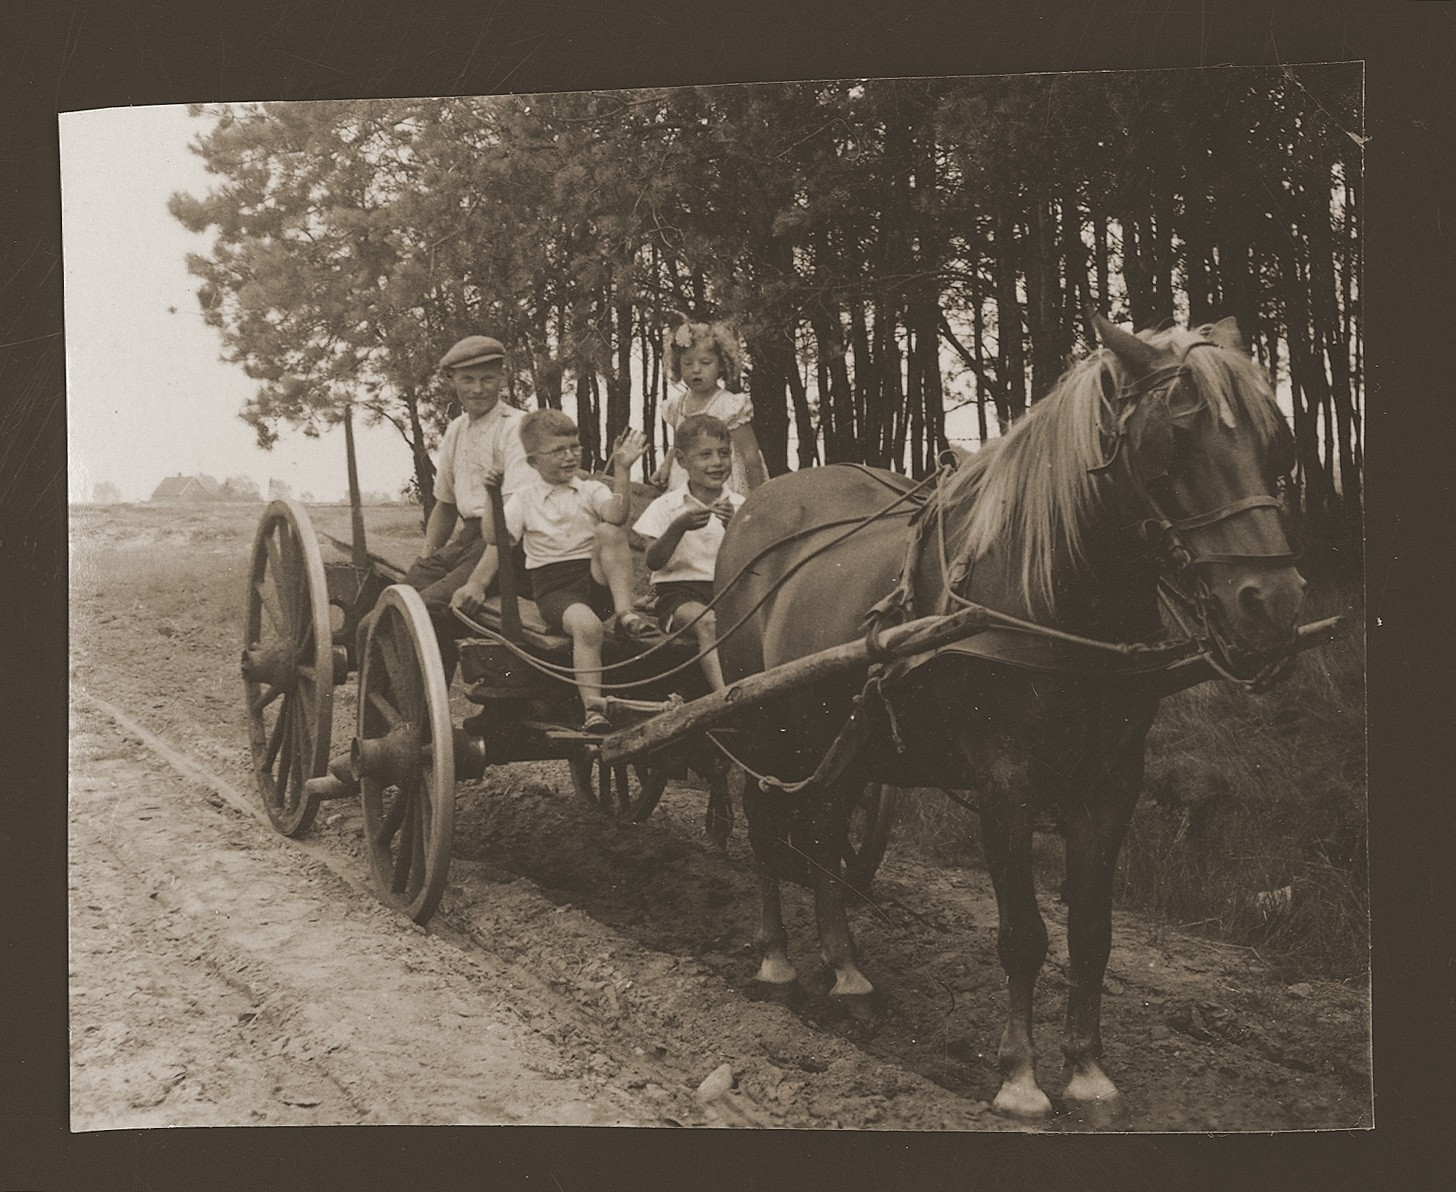 Rachel and Bernhard Kats ride on a wagon with a farmer and his son.